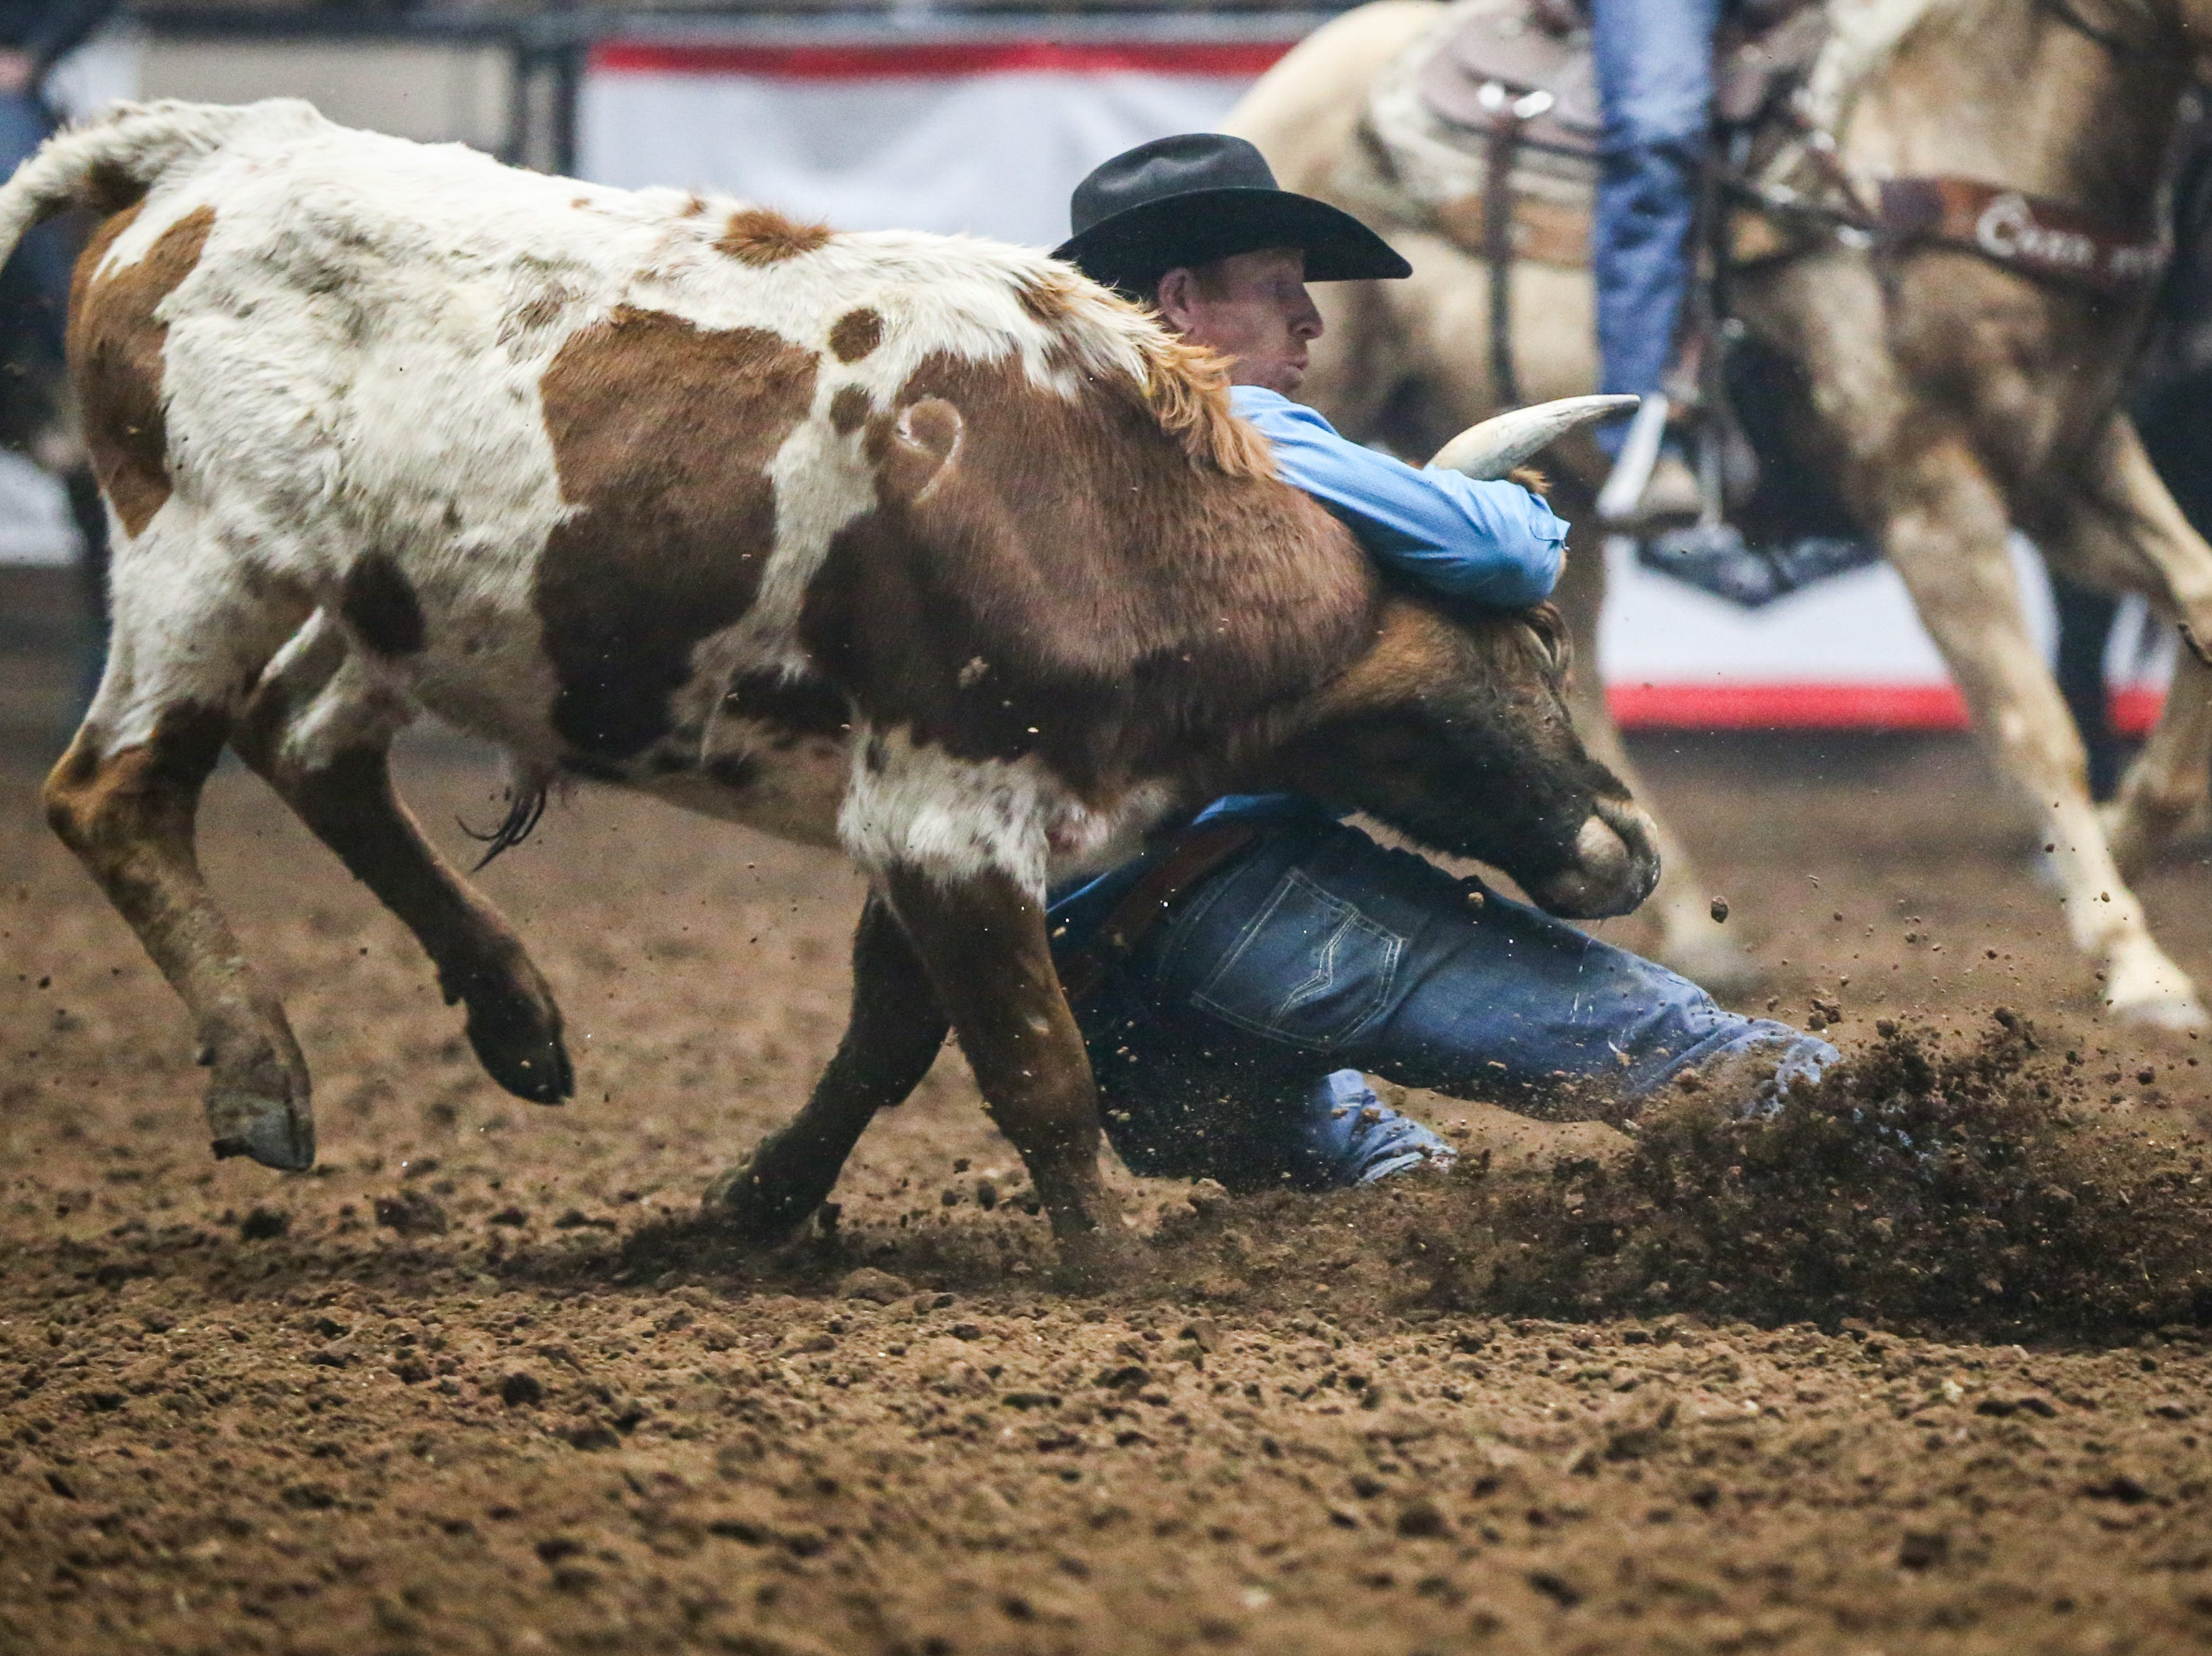 Blake Mindemann catches a steer to wrestle down during Cinch Chute Out Saturday, Feb. 16, 2019, at Foster Communications Coliseum. Mindemann was the steer wrestling champion.